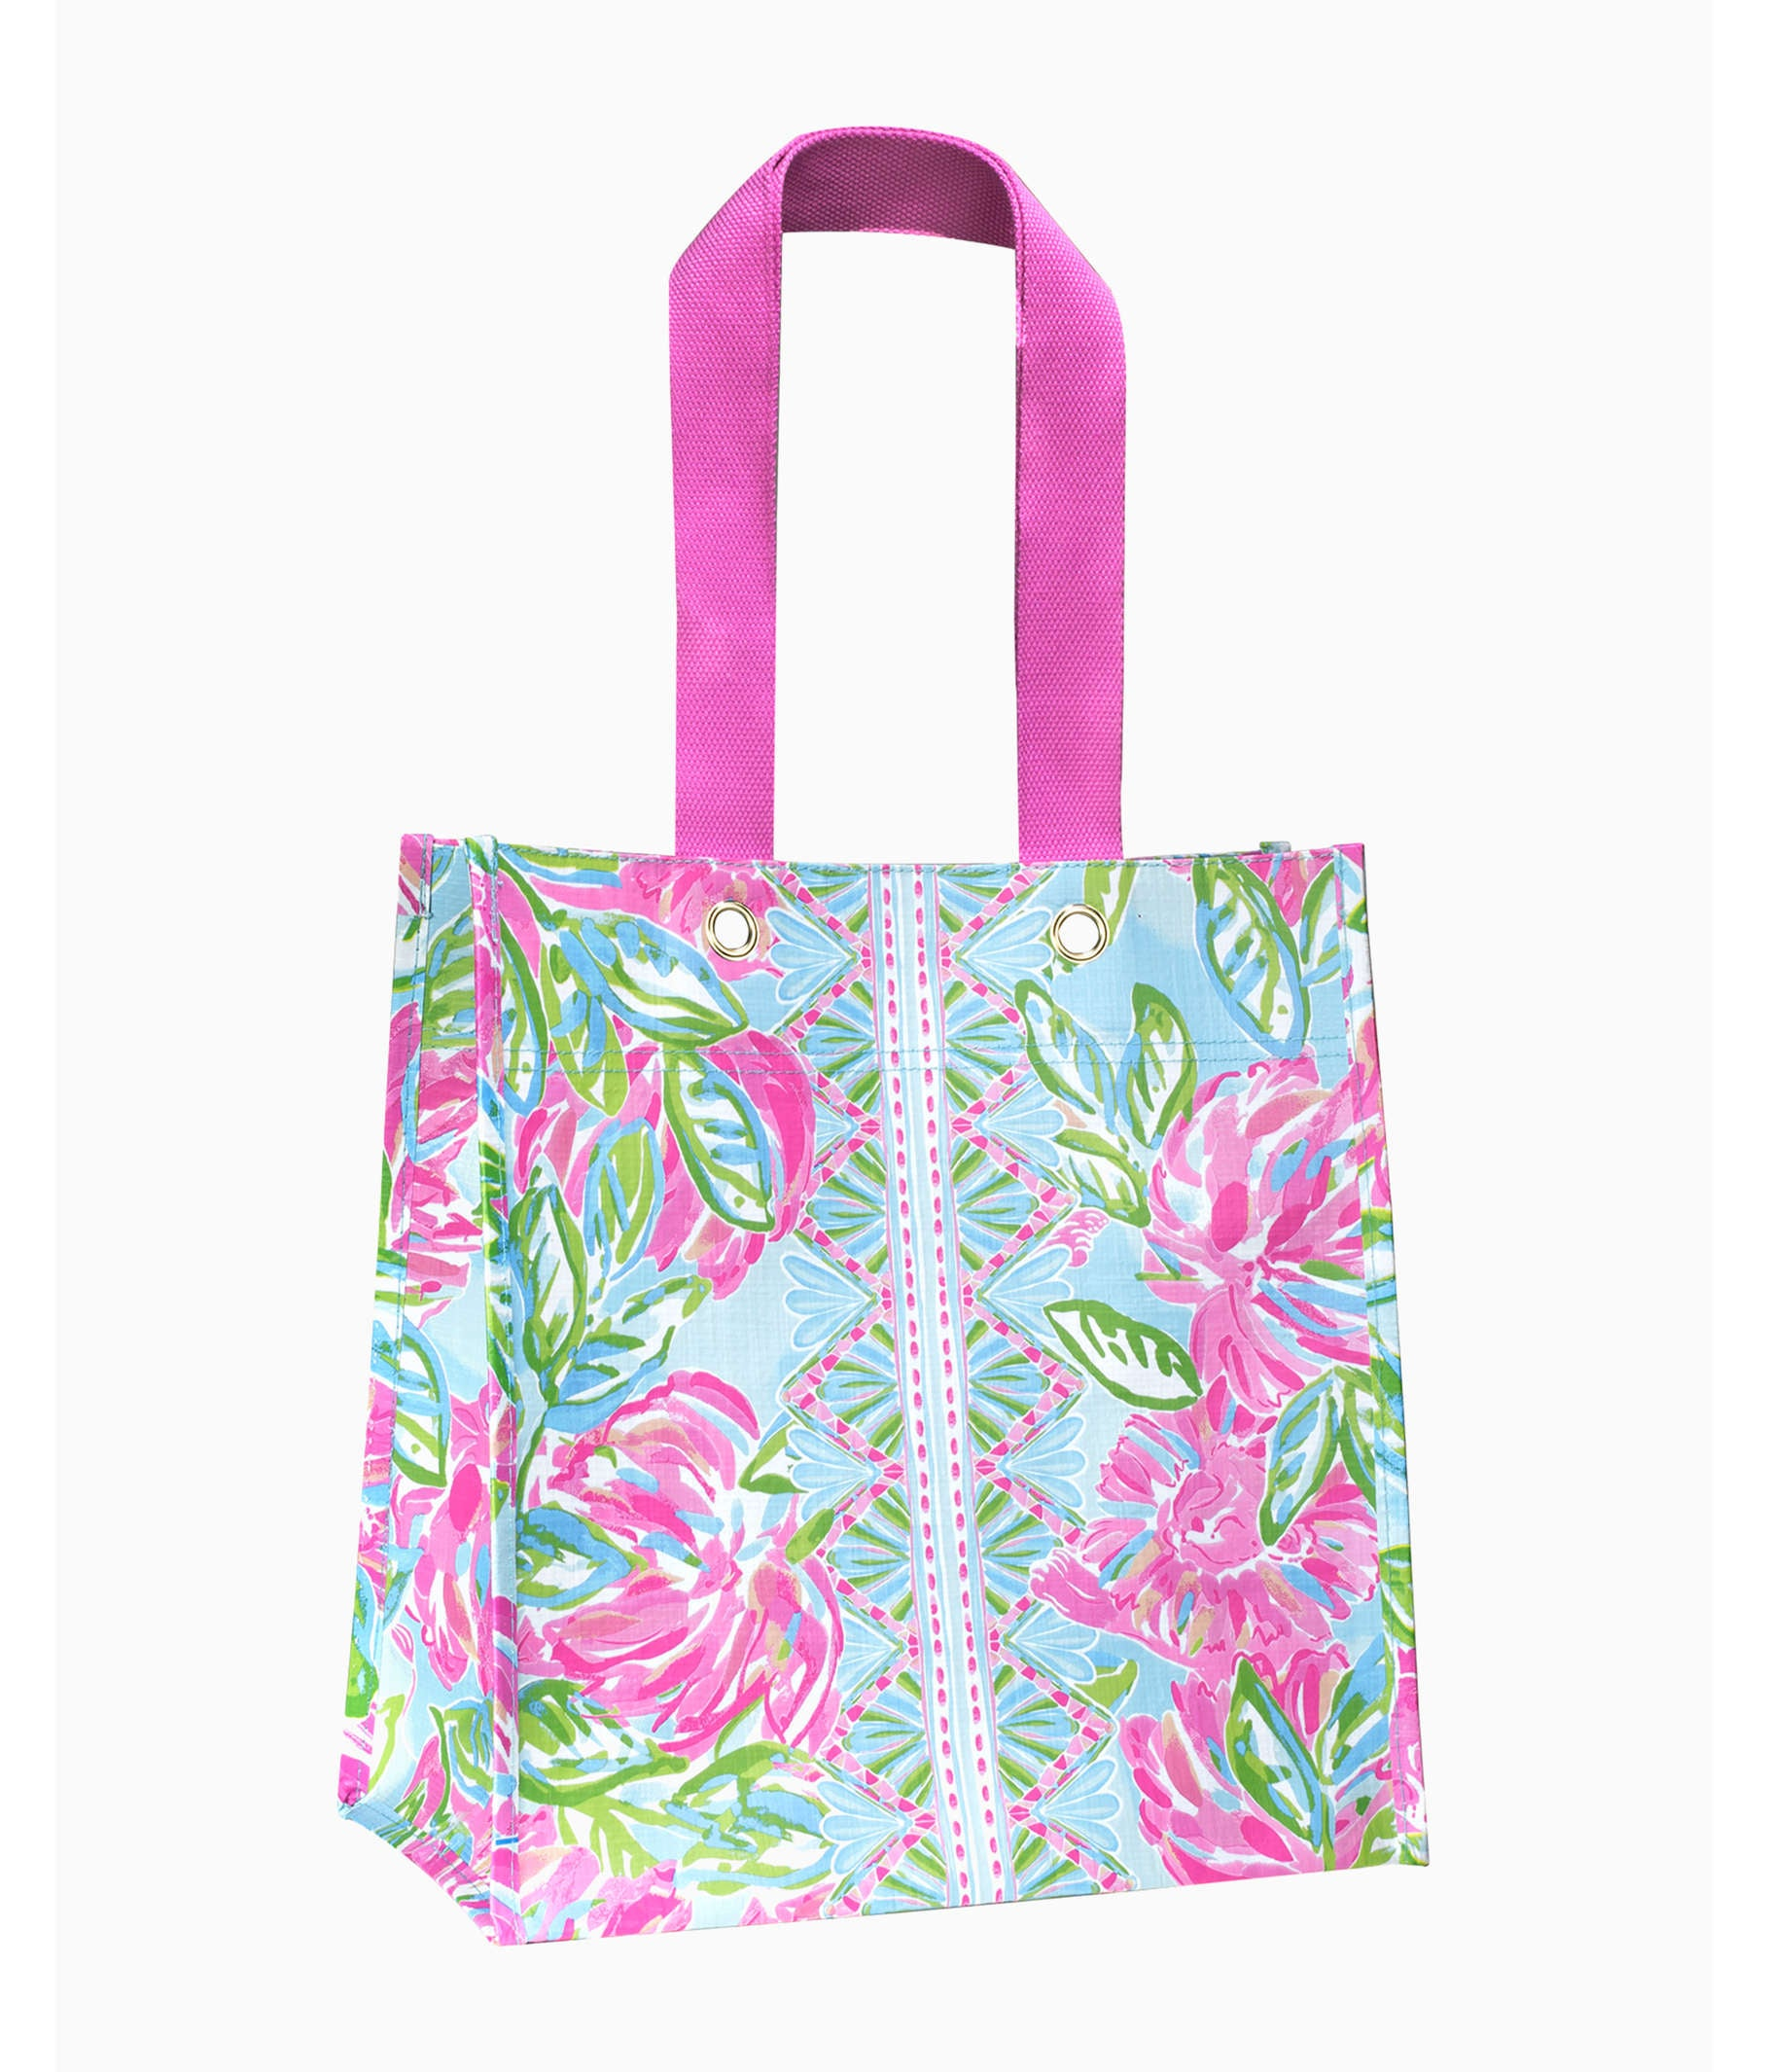 Lilly Pulitzer Market Tote, Totally Blossom